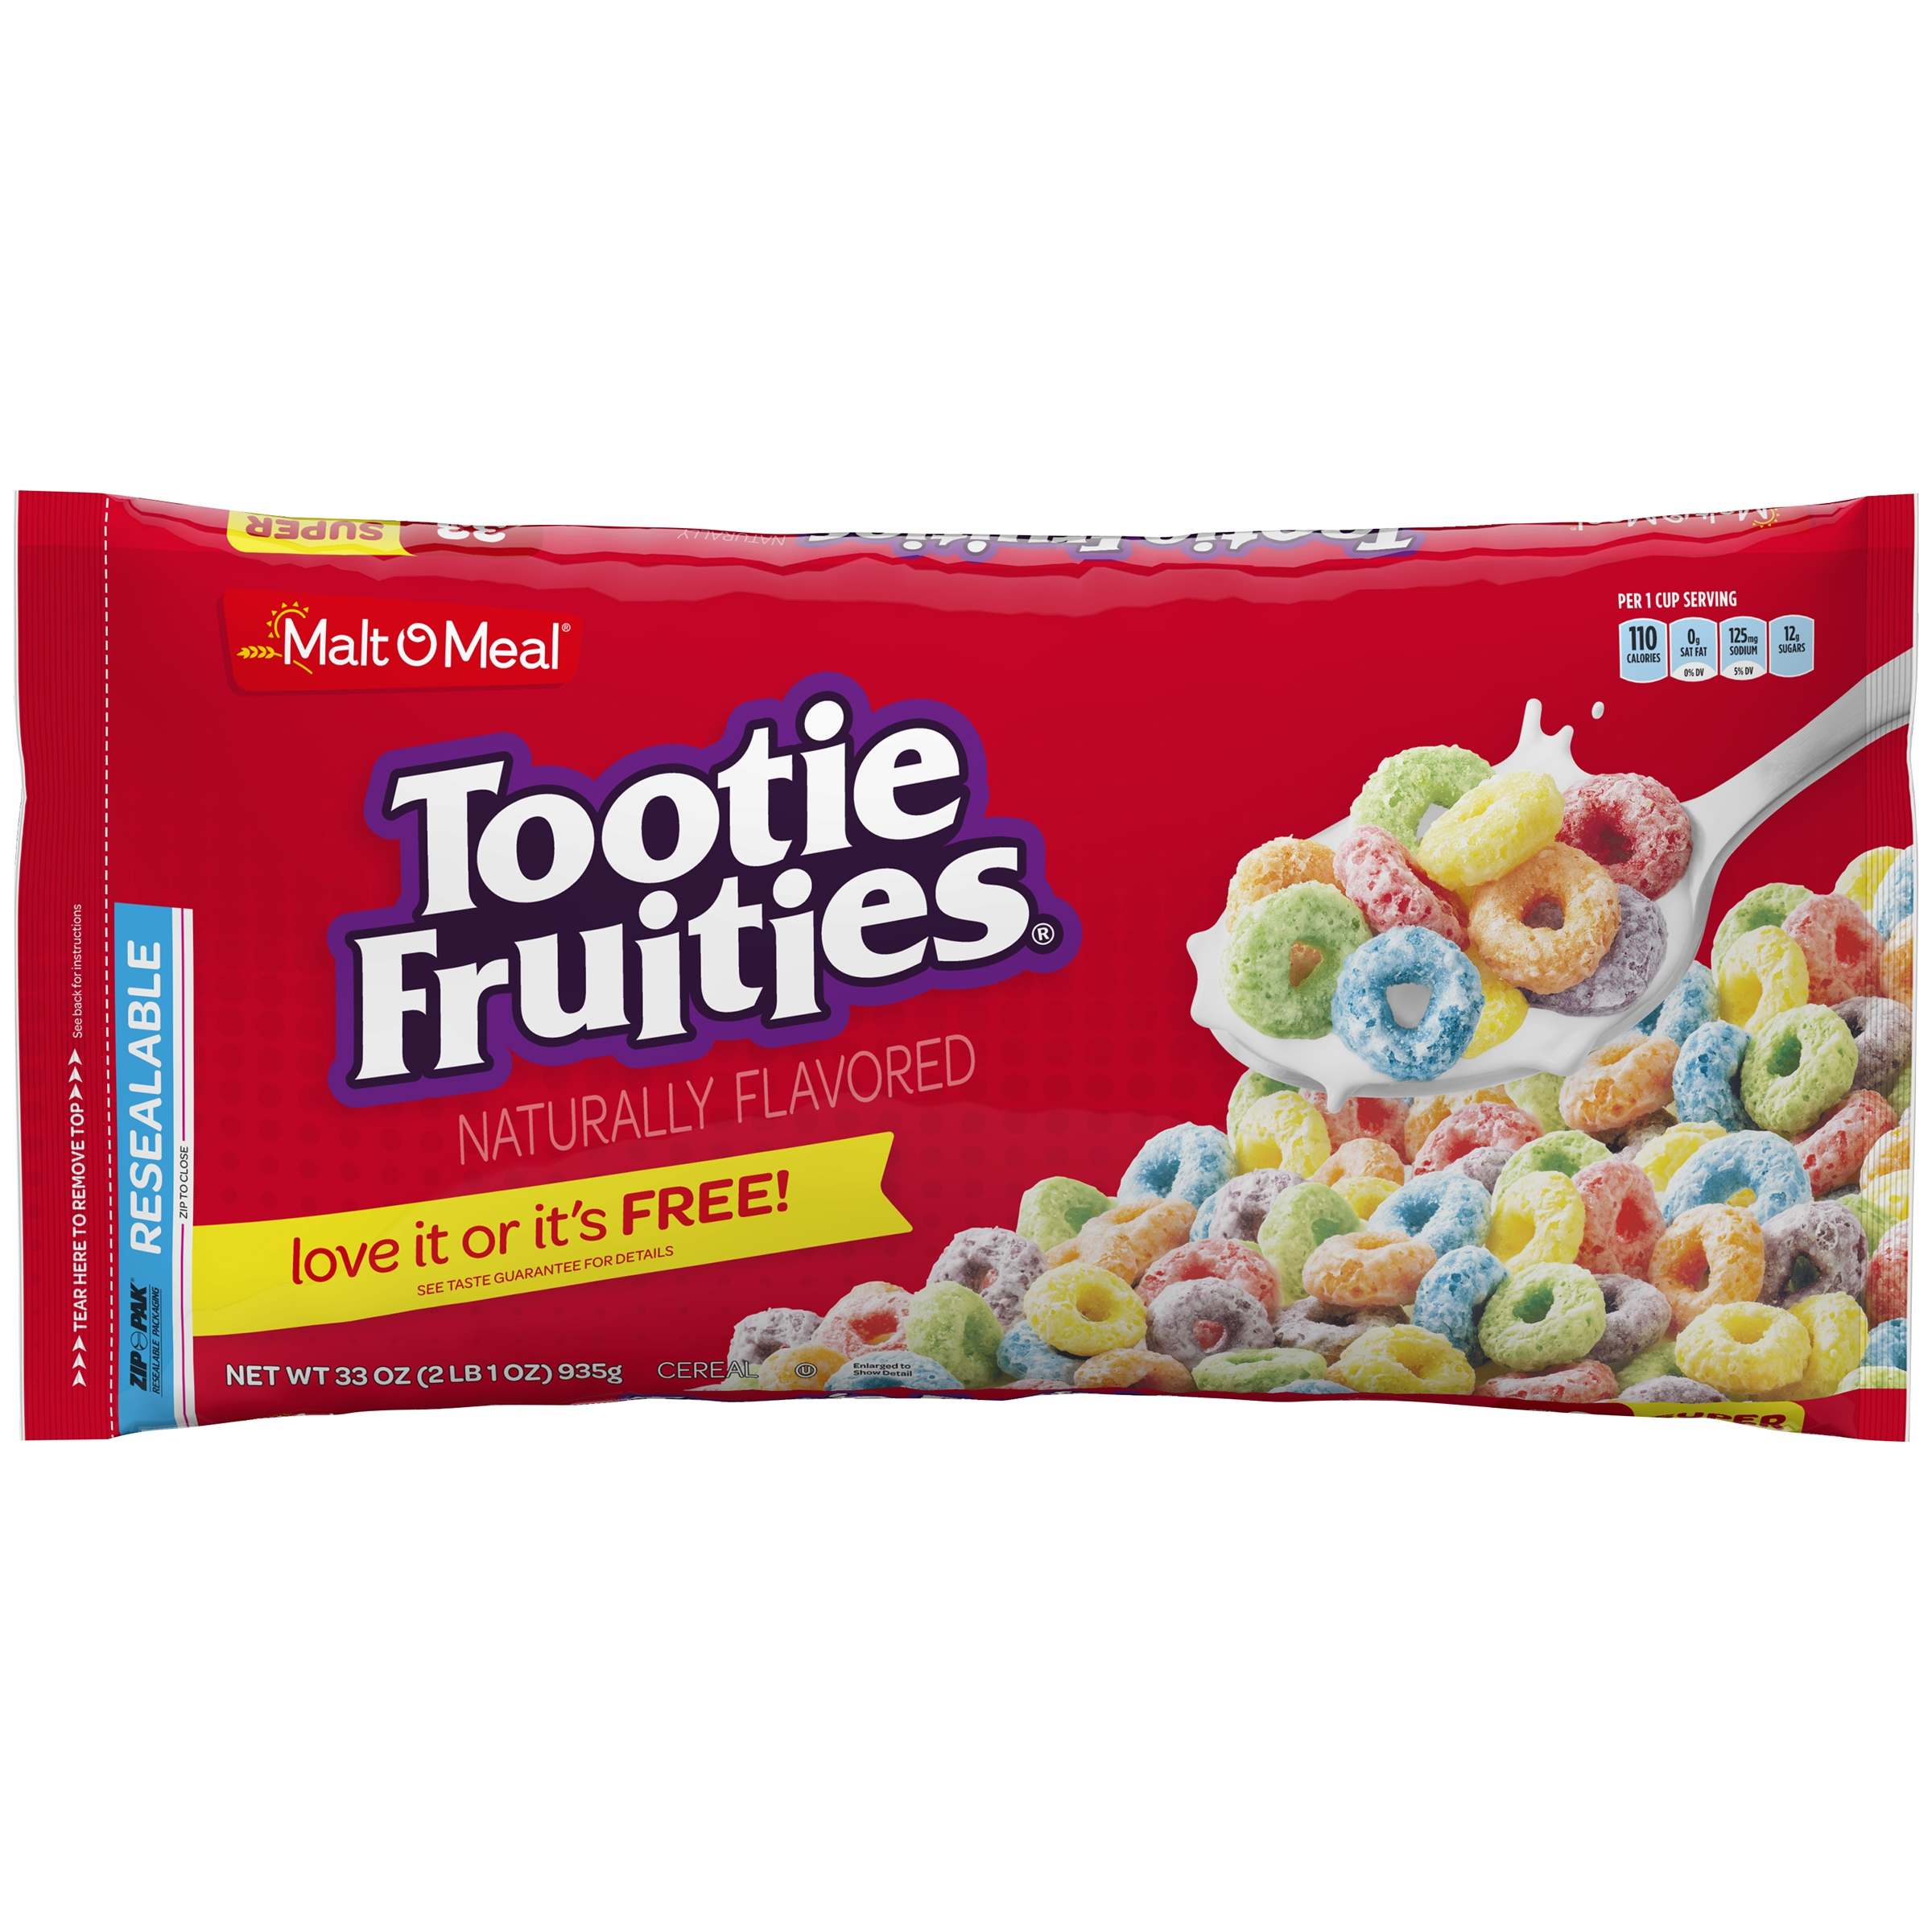 (2 Pack) Malt-O-Meal Cereal Bag, Tootie Fruities, 33 Oz - $0.14/oz